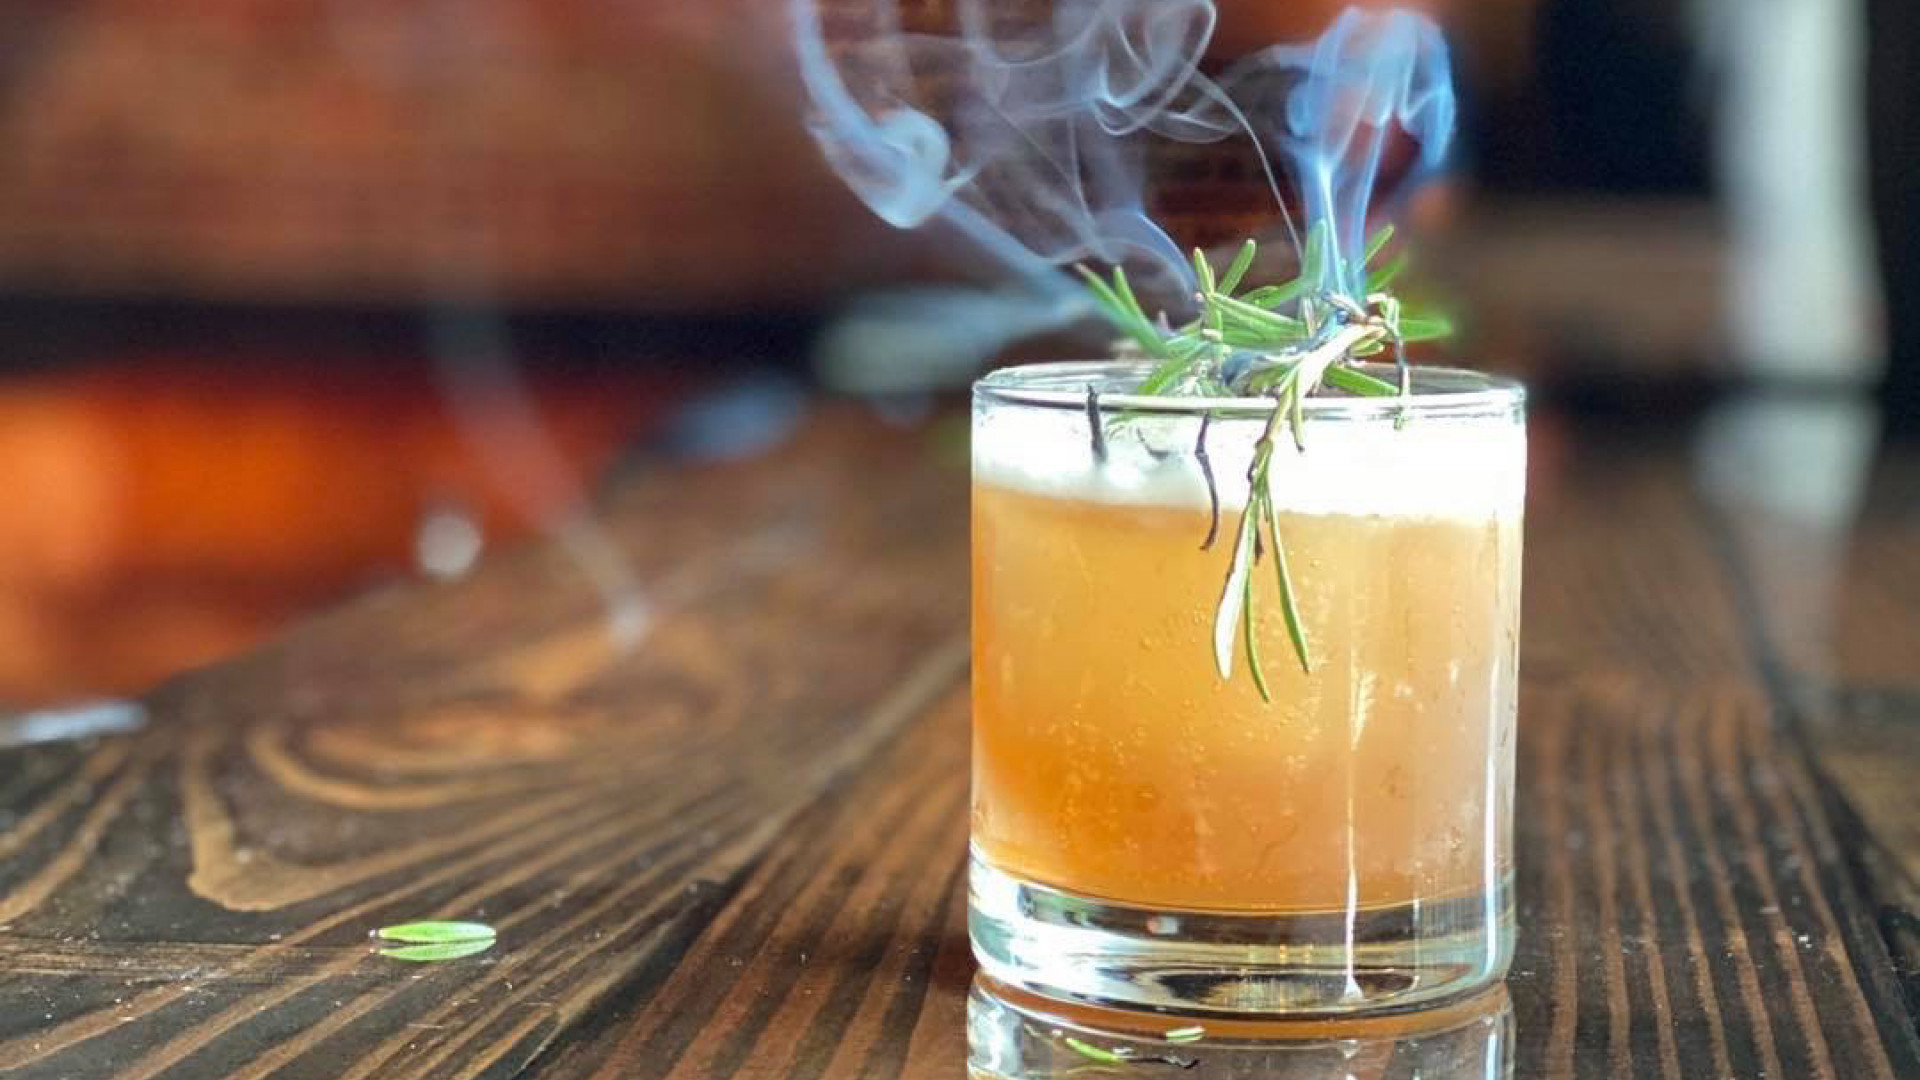 New Hampshire restaurants and activities | A smoking cocktail at 815 Cocktails and Provisions in Manchester